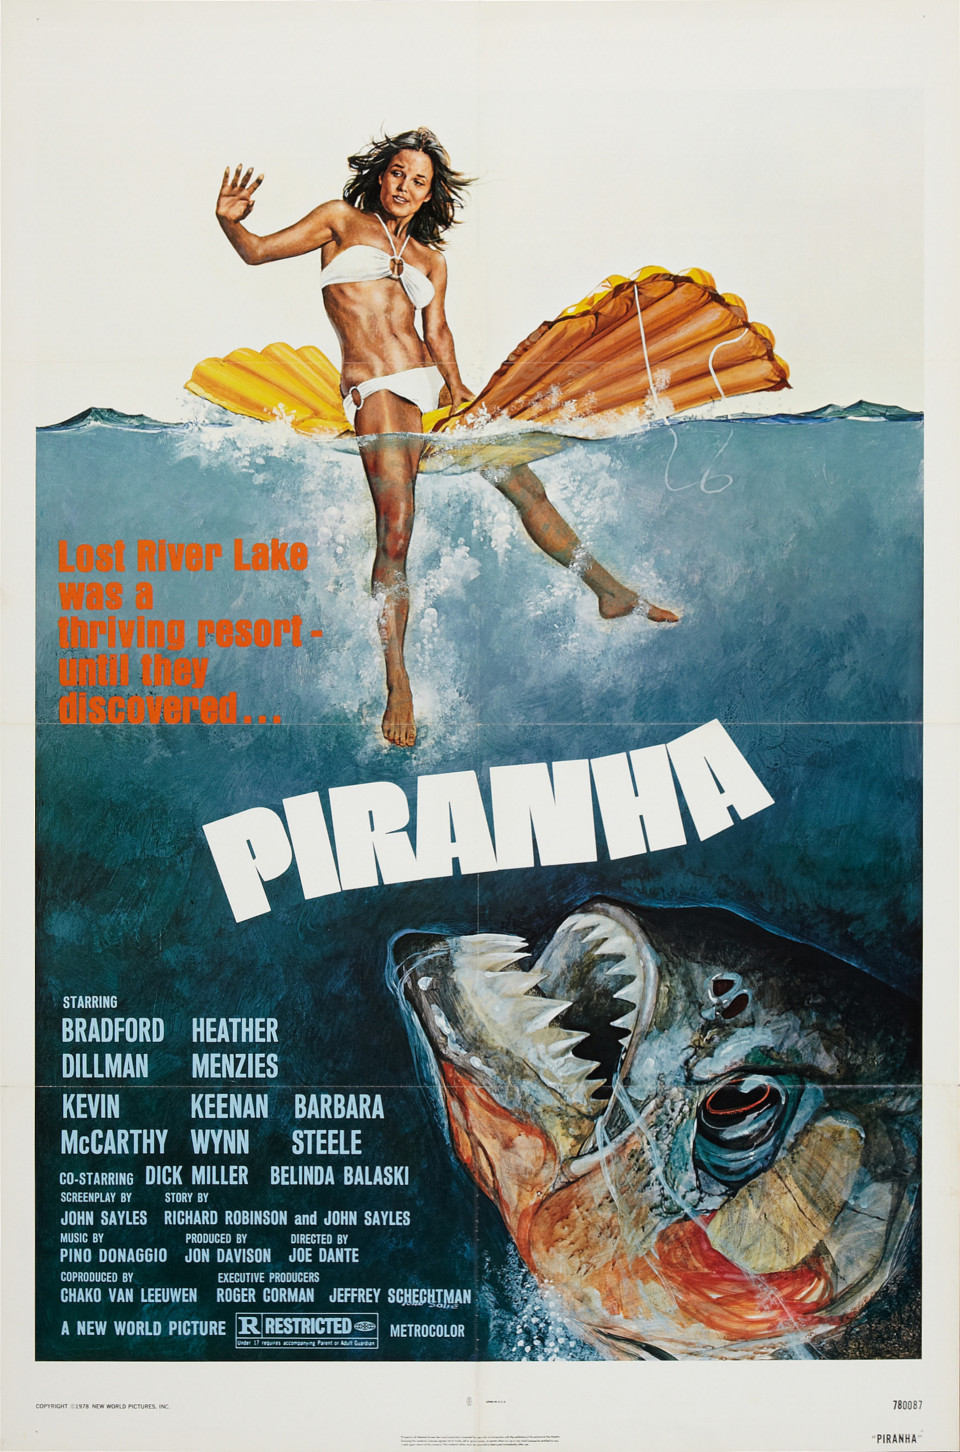 005-1978-Piranha-JohnSolie-US